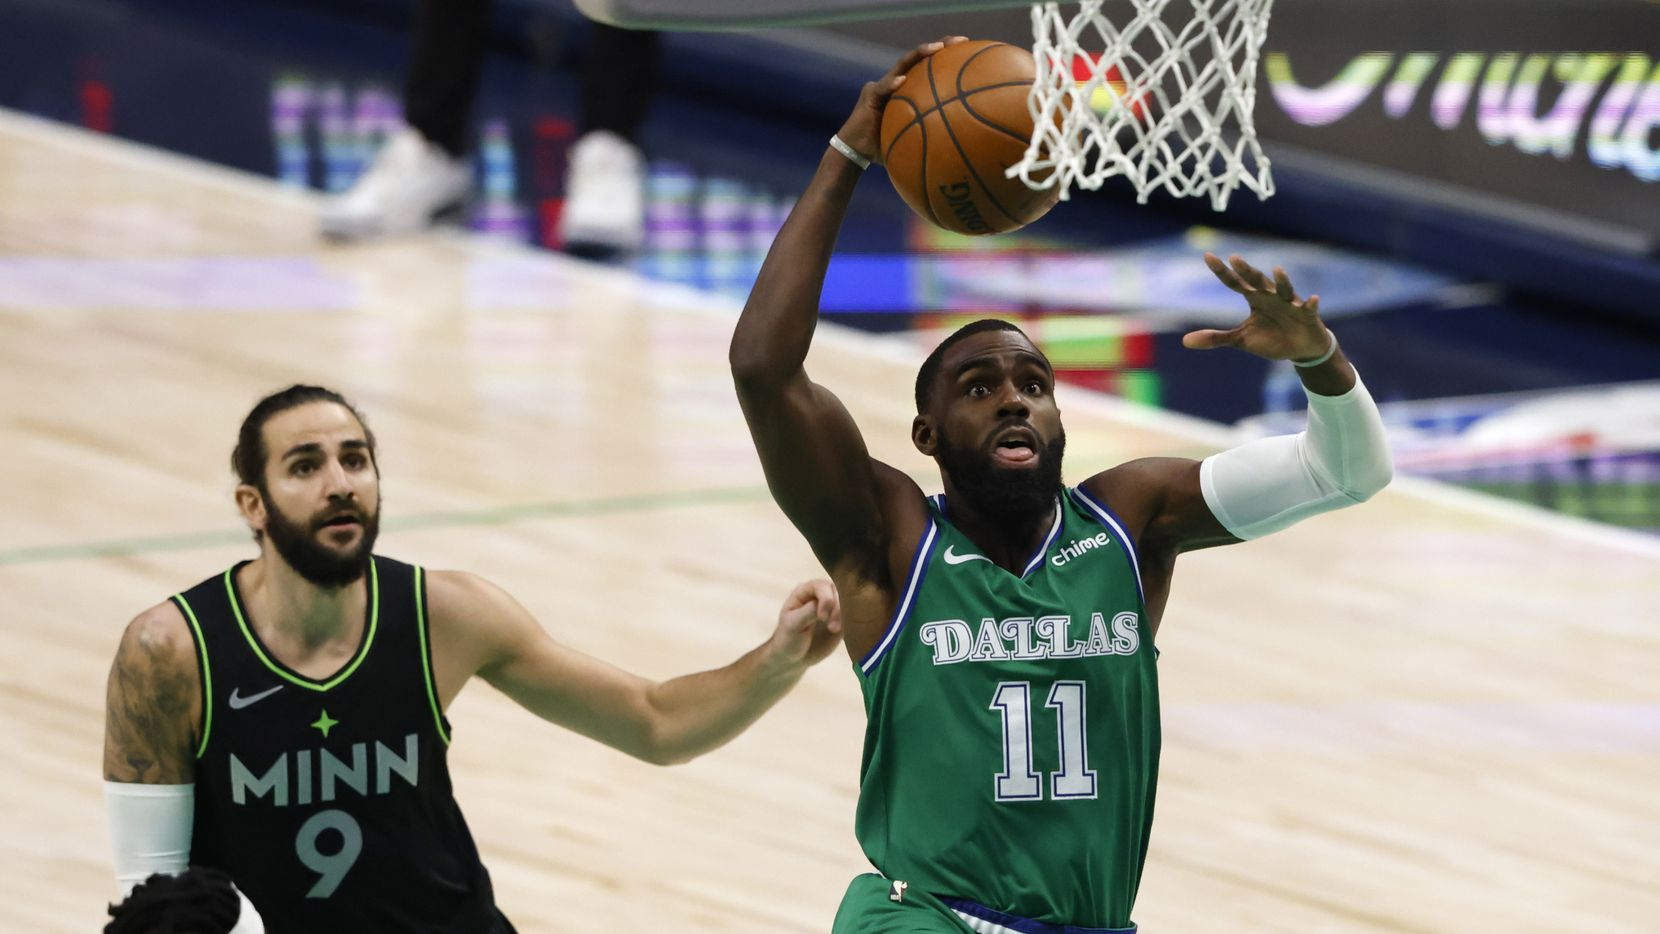 Dallas Mavericks guard Tim Hardaway Jr. (11) dunks the ball in front of Minnesota Timberwolves guard Ricky Rubio (9) during the first quarter of play at American Airlines Center on Monday, February 8, 2021 in Dallas.